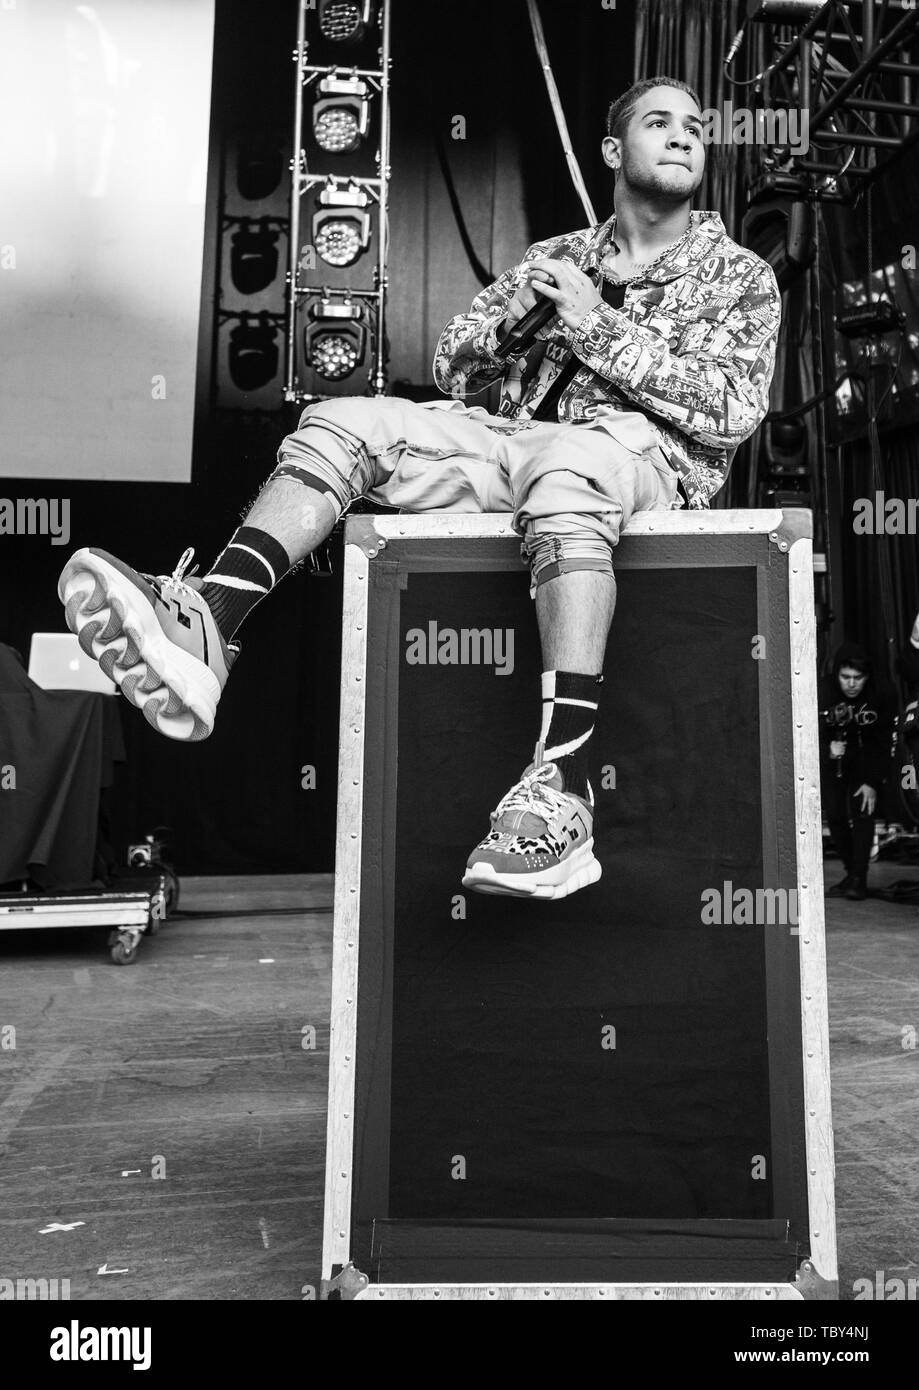 MOUNTAIN VIEW, CALIFORNIA - JUNE 2: Richard Camacho of CNCO performs during Wild 94.9's Wazzmatazz at Shoreline Amphitheatre on June 2, 2019 in Mountain View, California. Photo: Chris Tuite/imageSPACE/MediaPunch Stock Photo